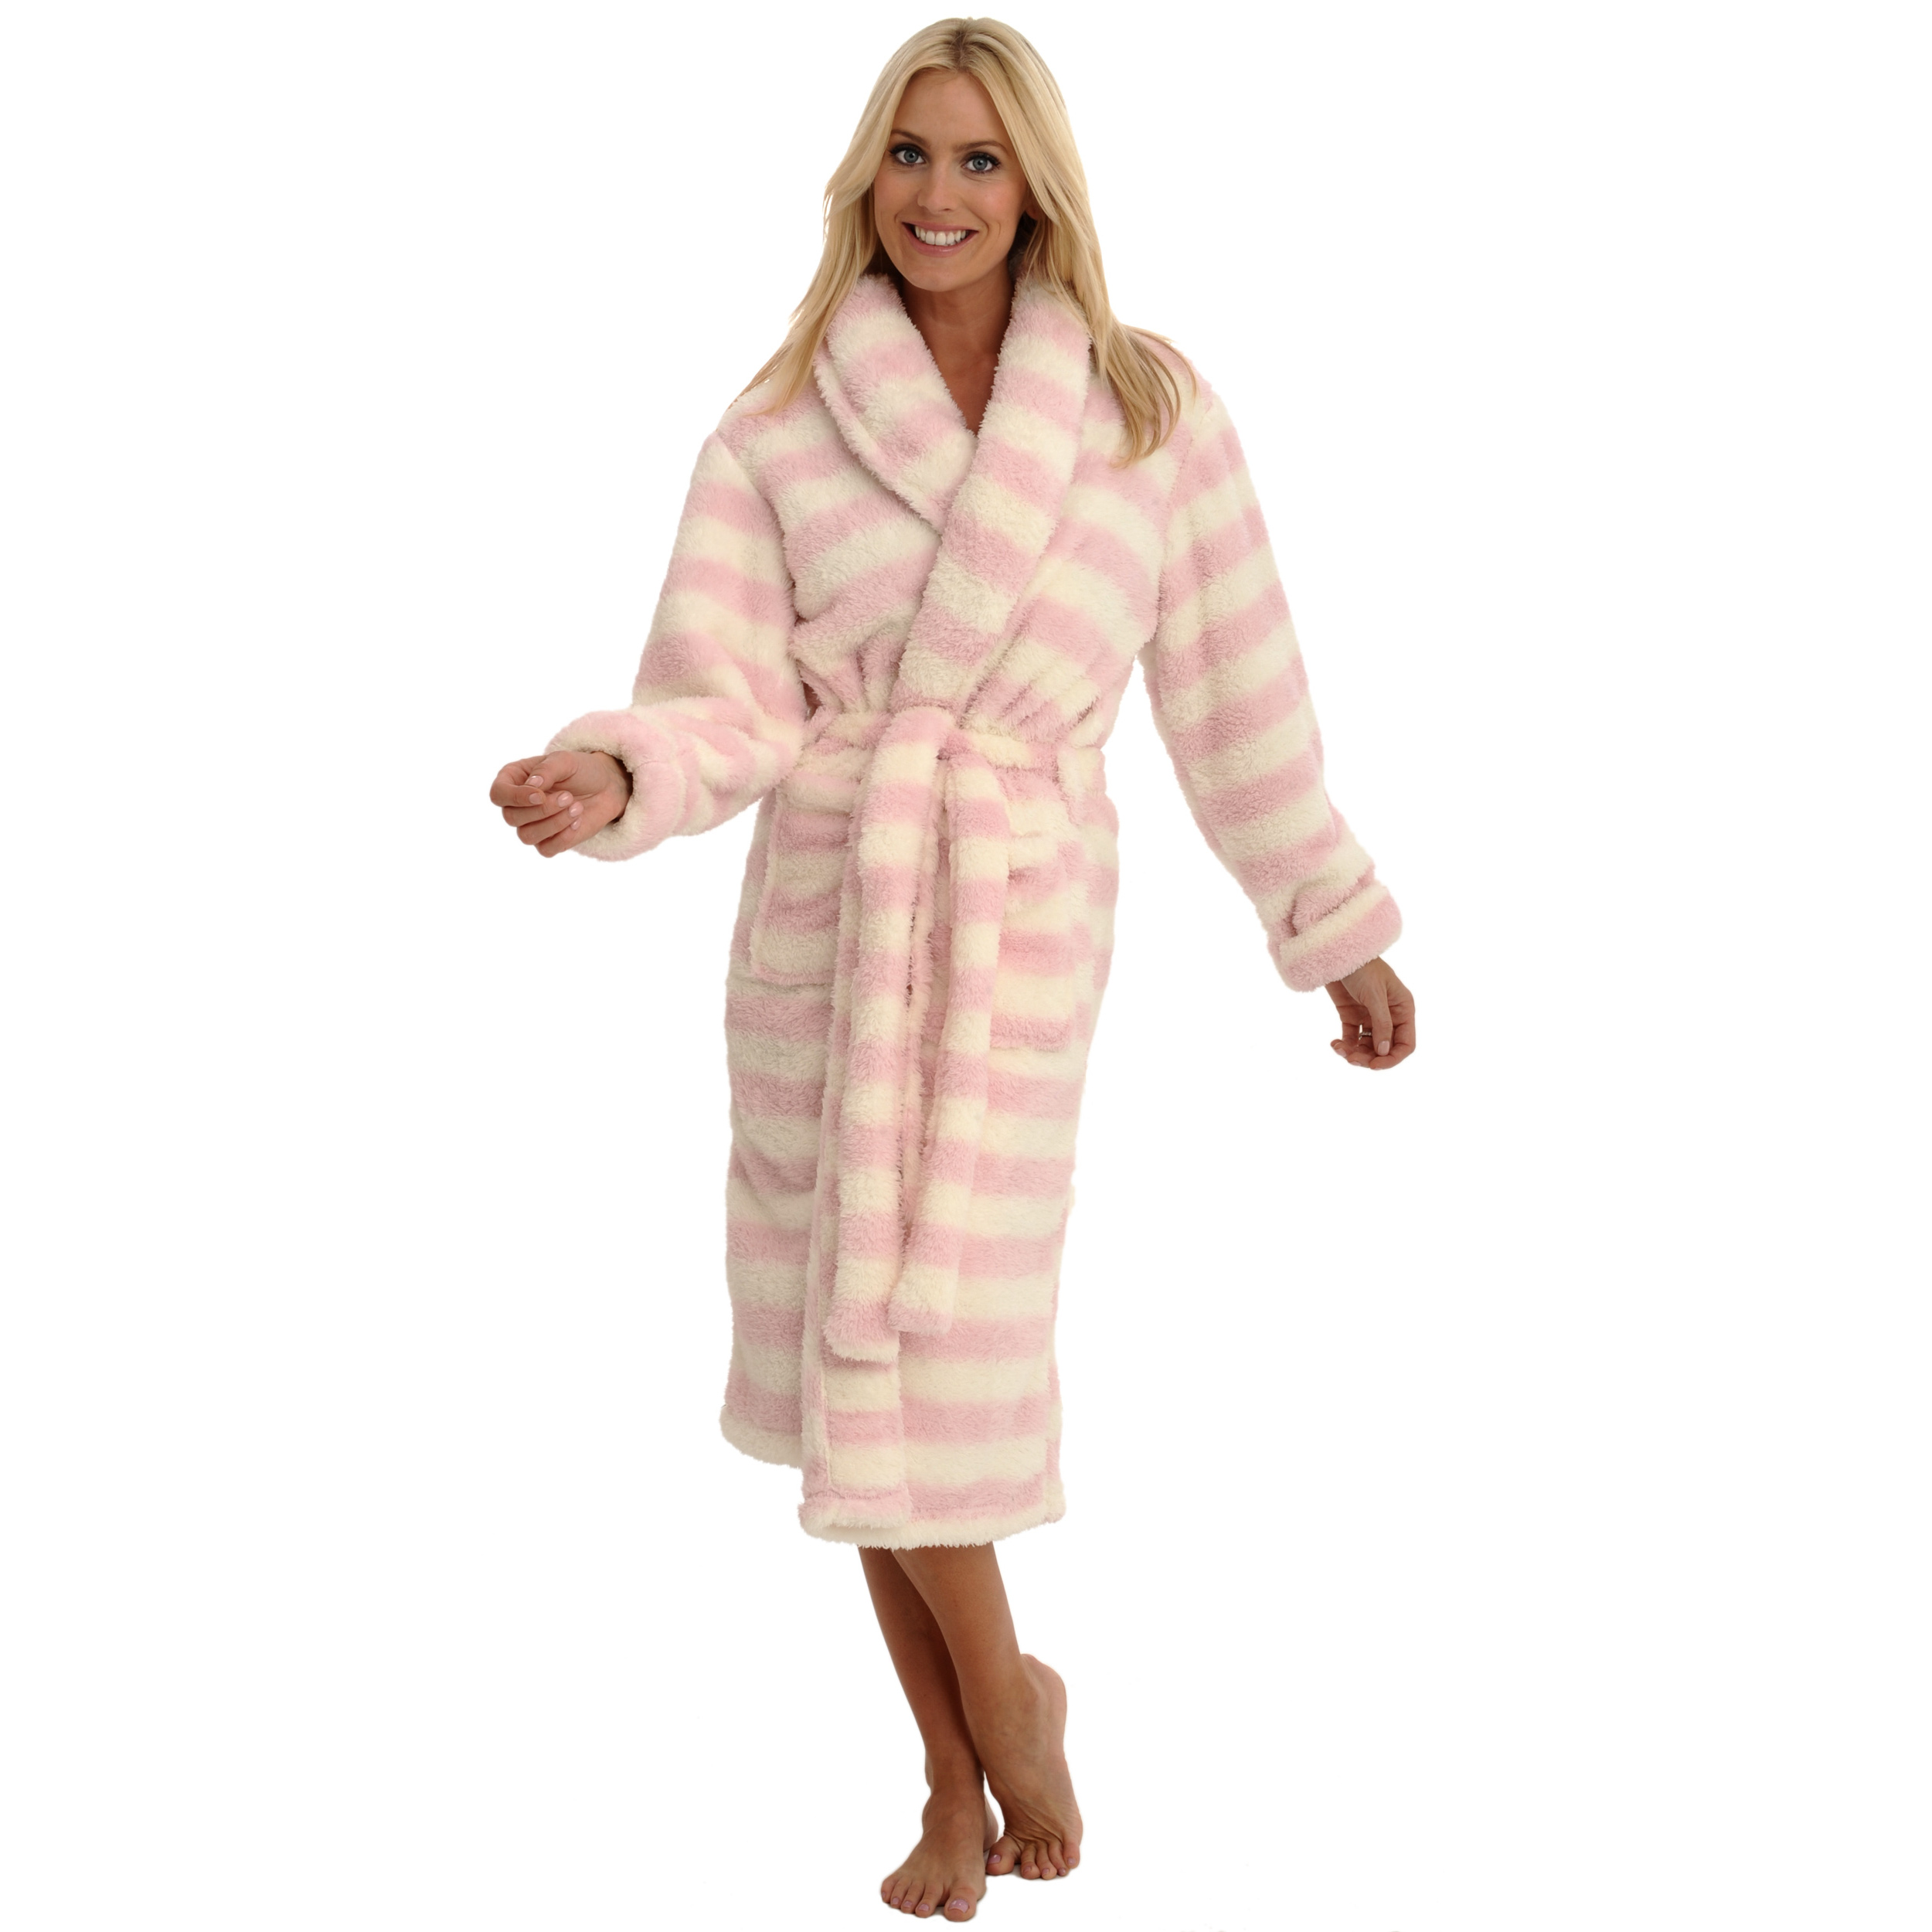 Plush Bathrobes | Plush Womens Bathrobes | Long Bathrobes For Women